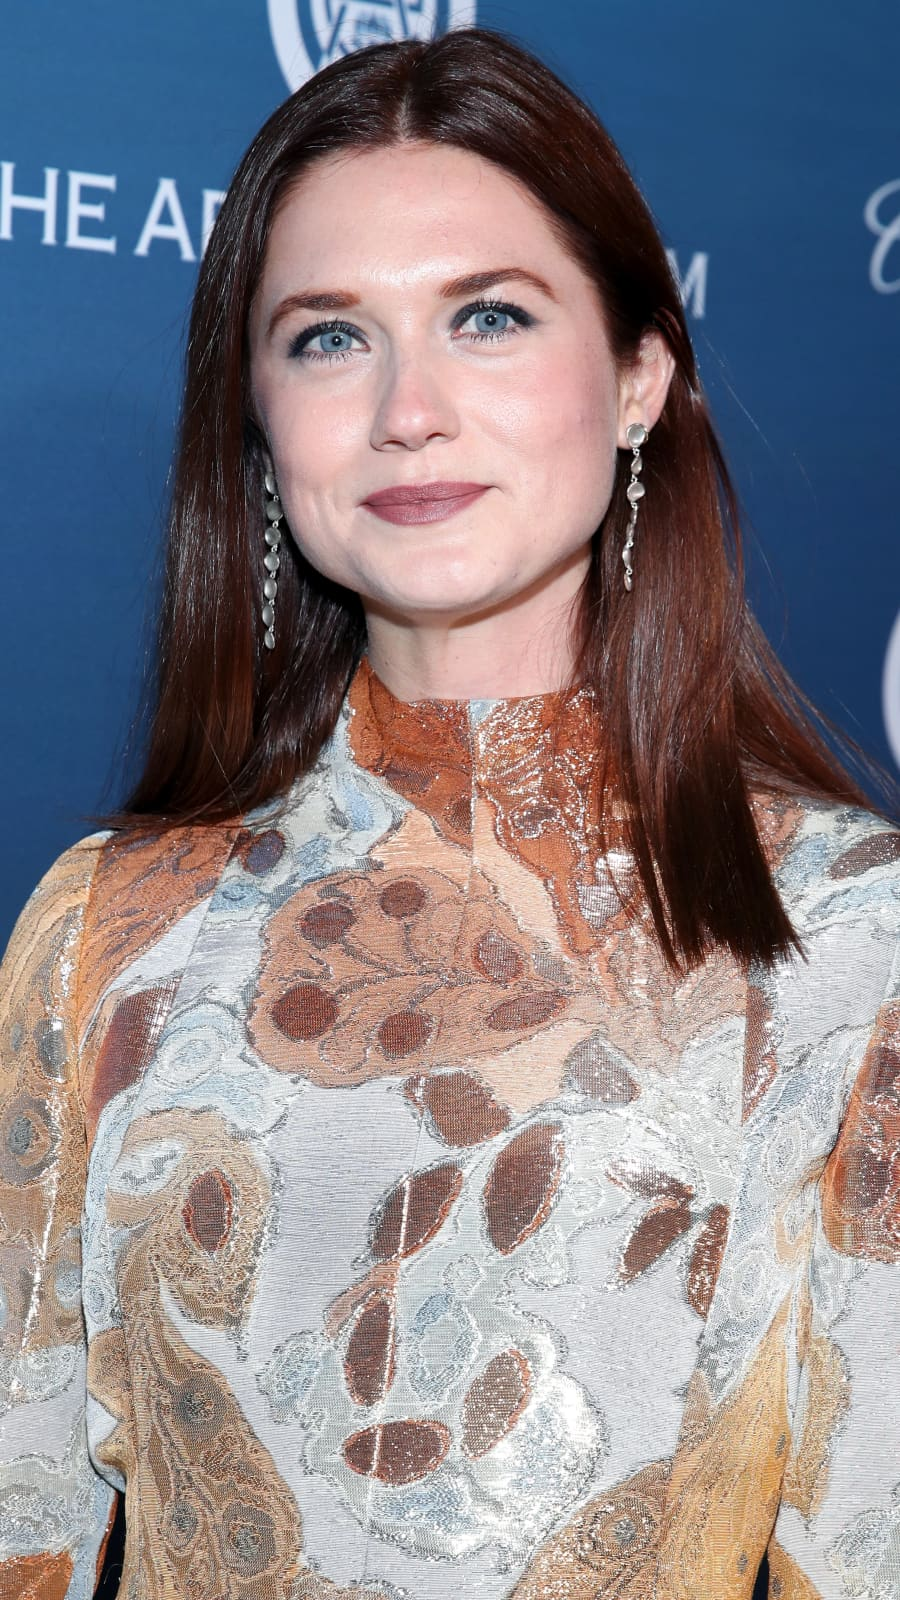 Bonnie Wright Ginny Weasley From Harry Potter In 2021